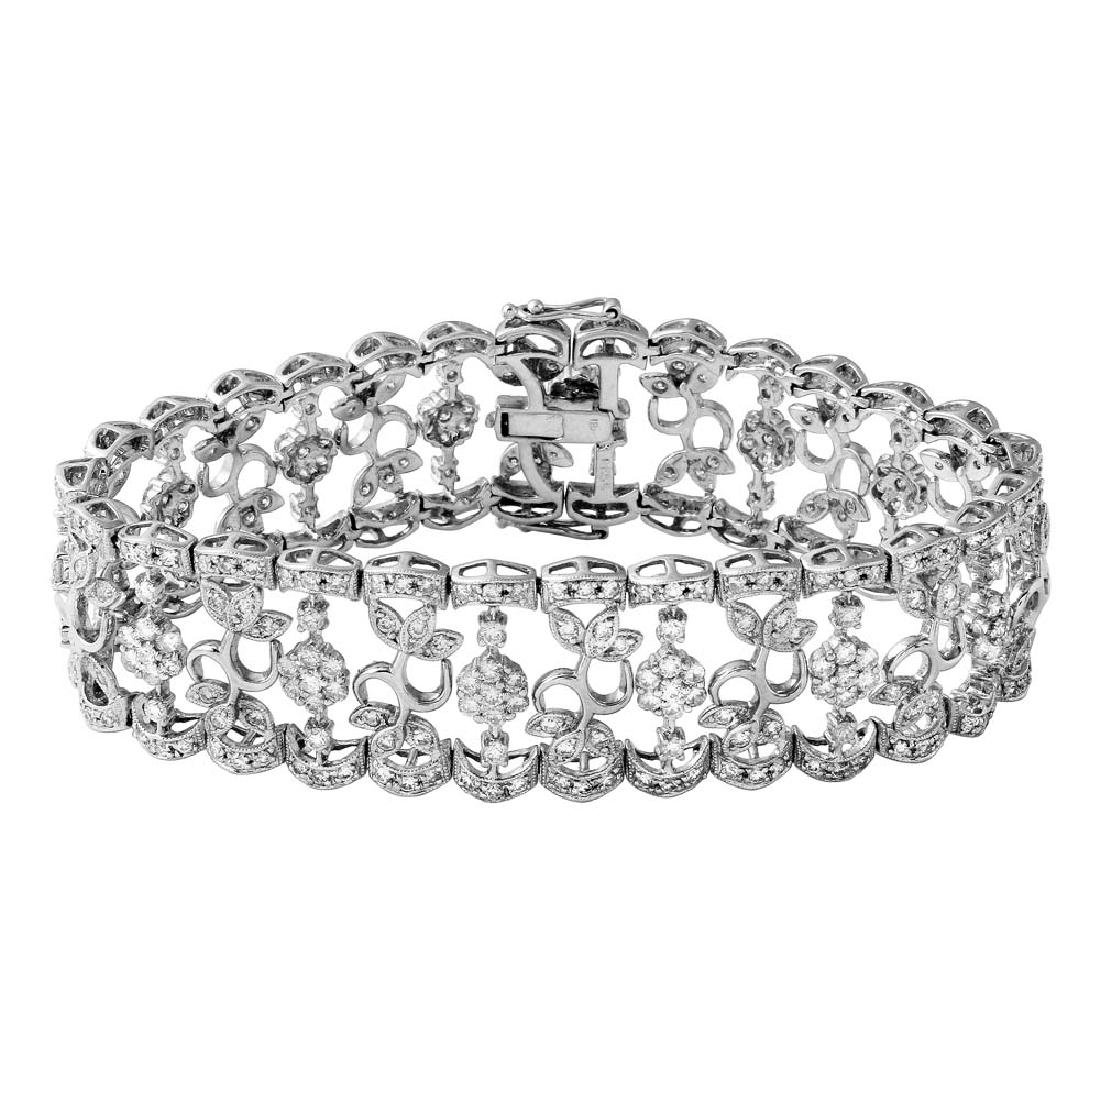 Genuine 6.55 TCW 18K White Gold Ladies Bracelet